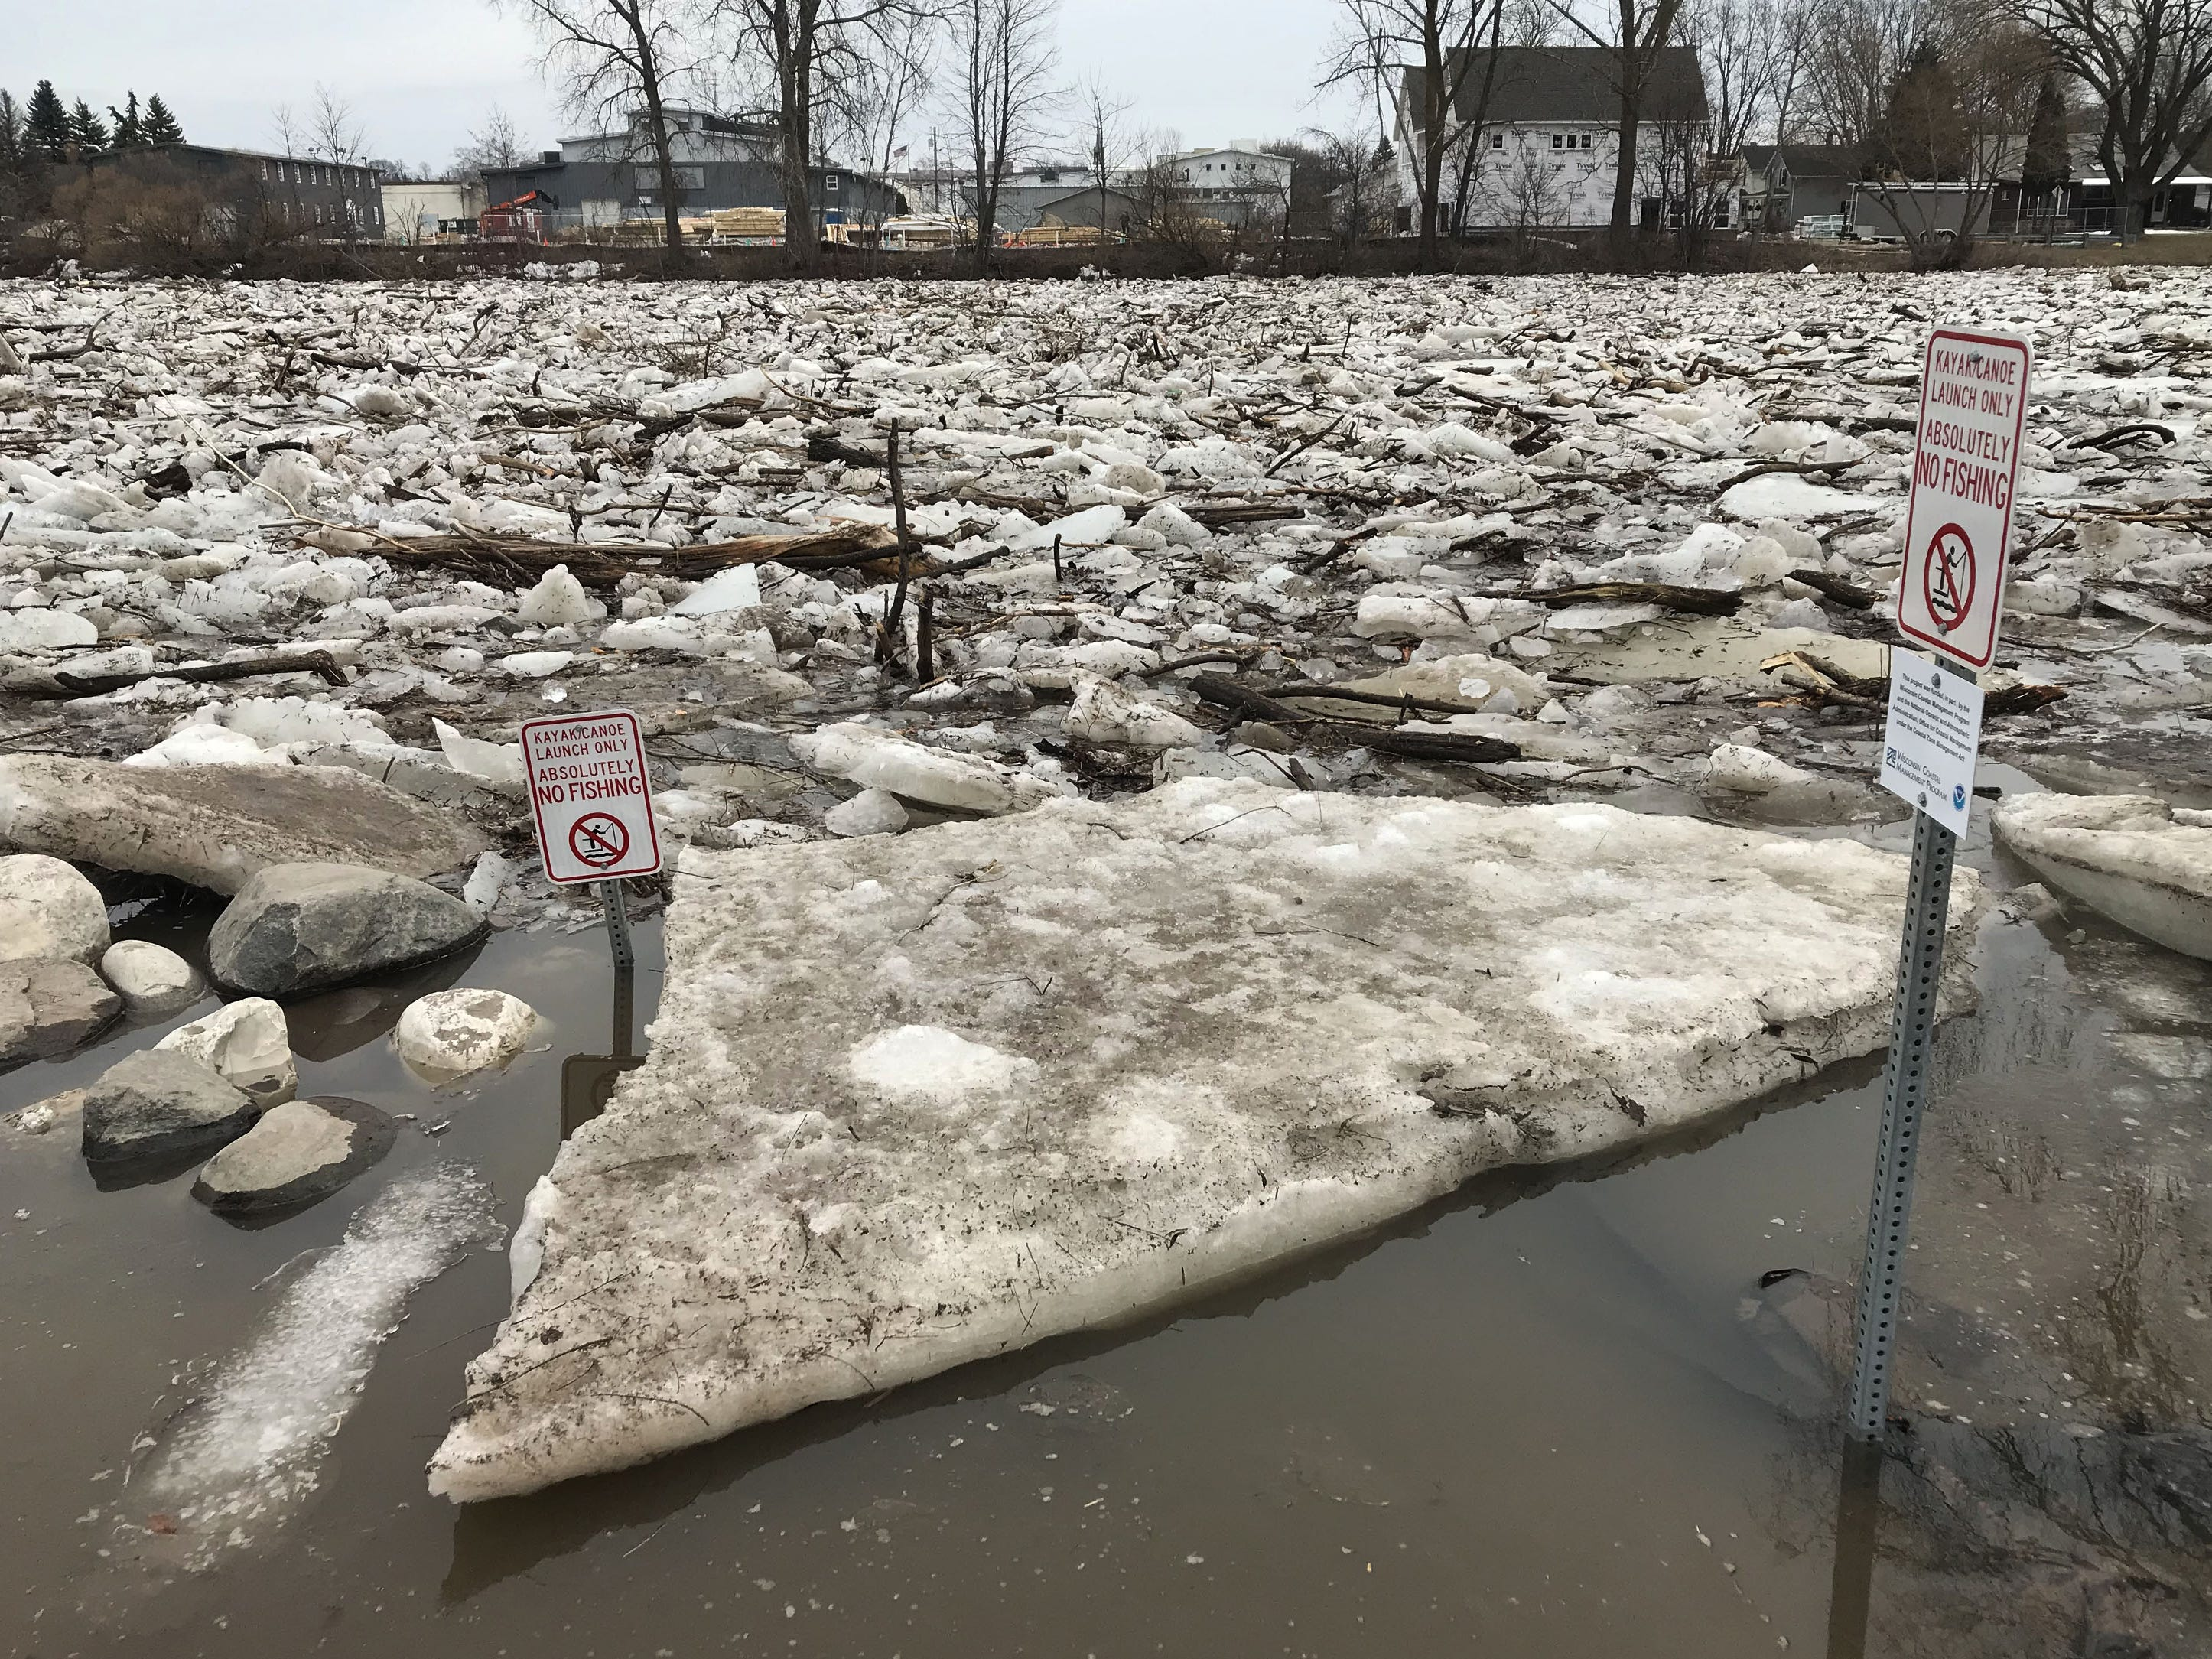 A big slab of ice parks next to a kayak/canoe signs at Kiwanis Park, Wednesday, March 20, 2019, in Sheboygan, Wis.